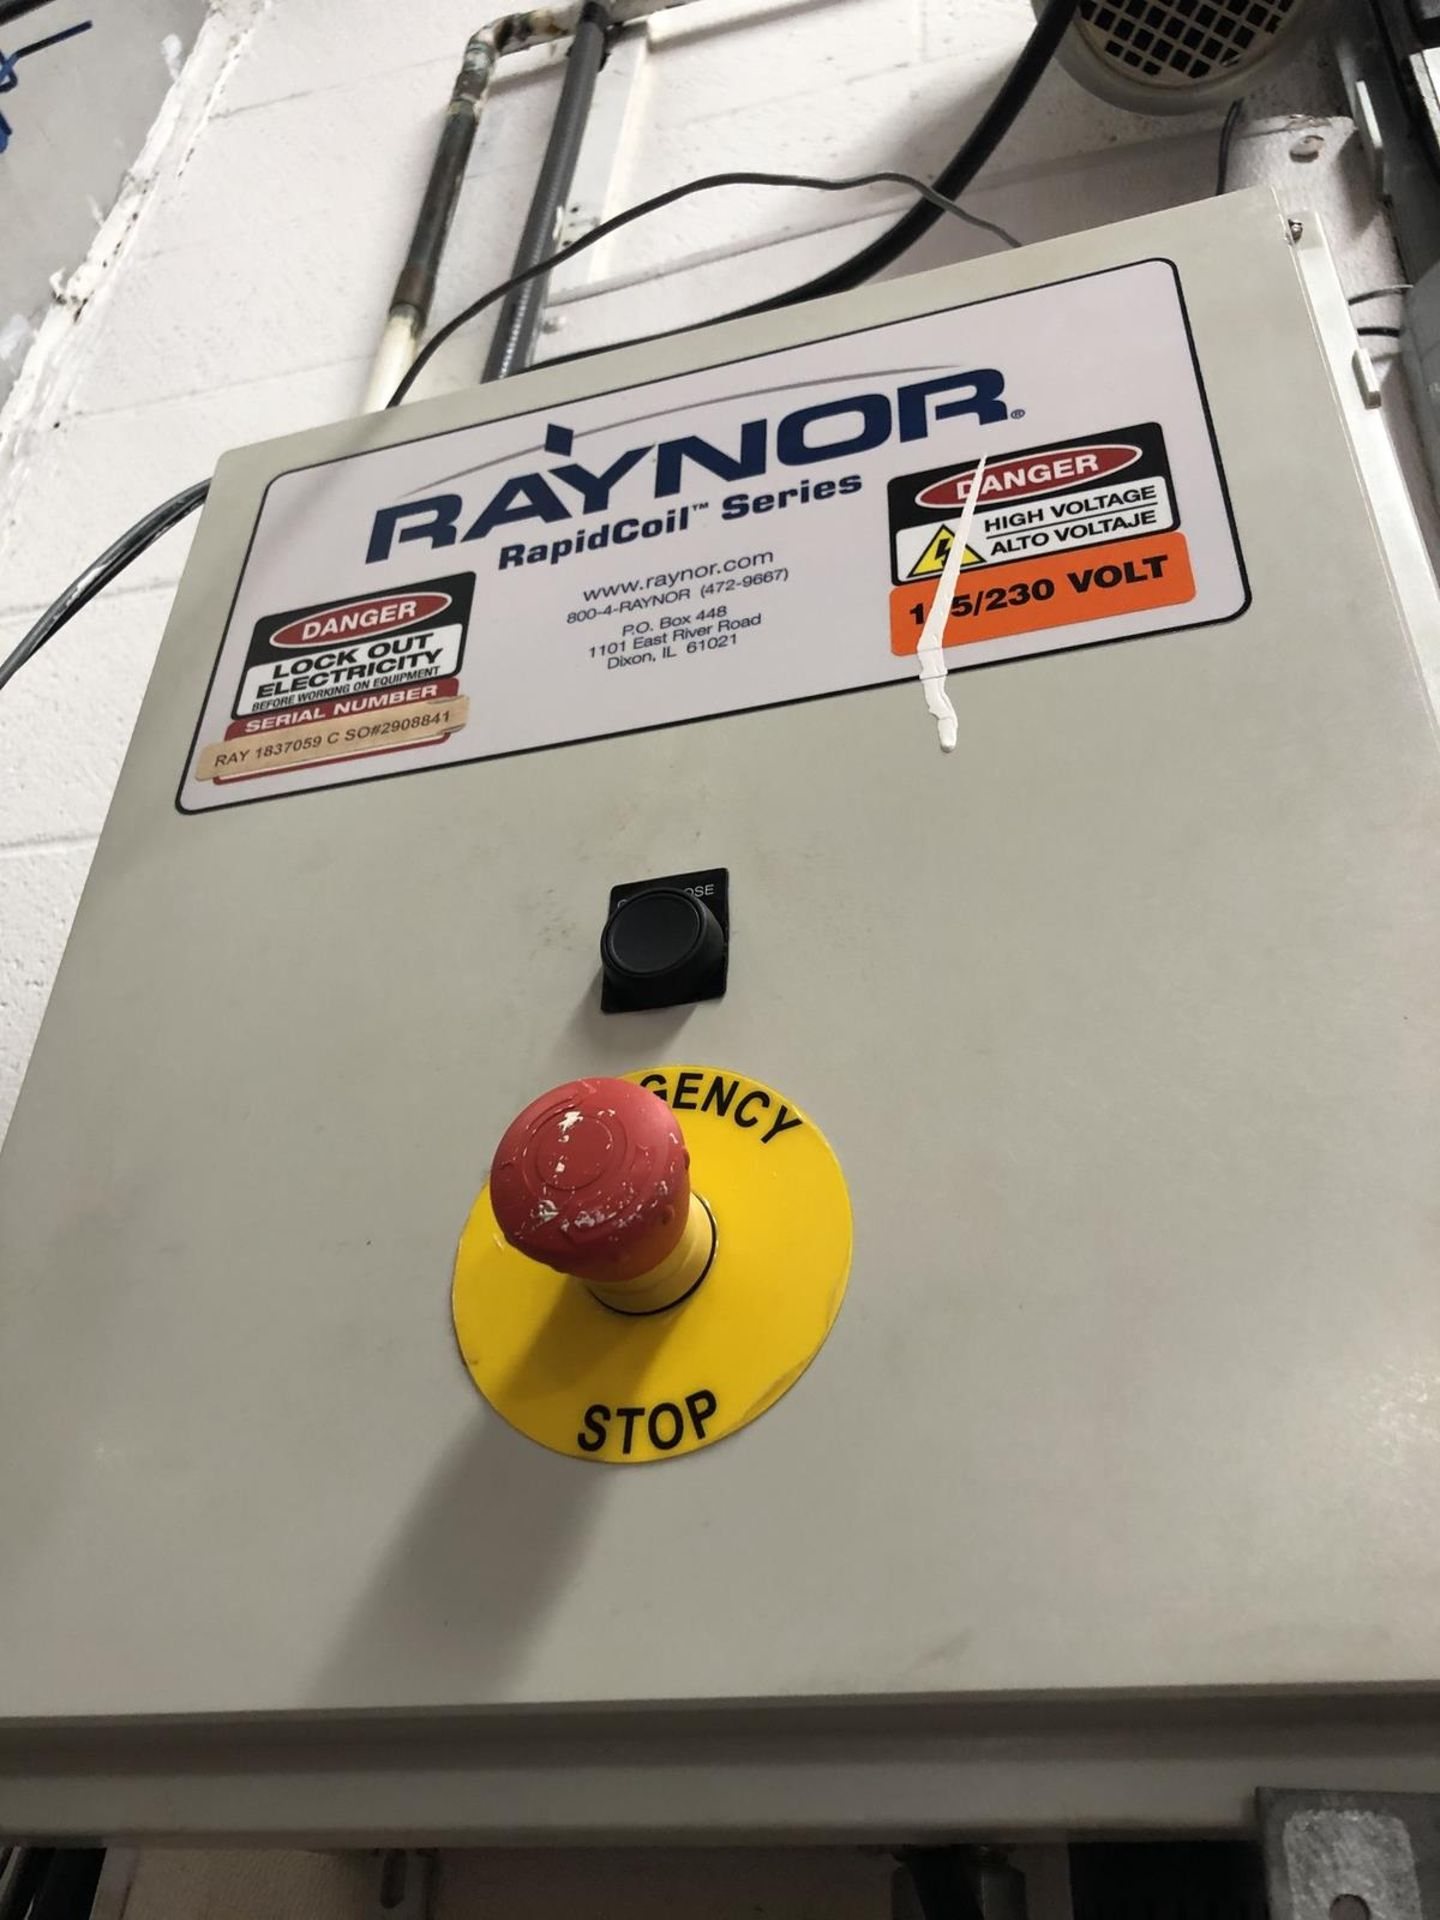 Lot 118 - Raynor Rollling (Garage) Door, Automatic Open and Close System, Missing Cover | Rig $ See Desc